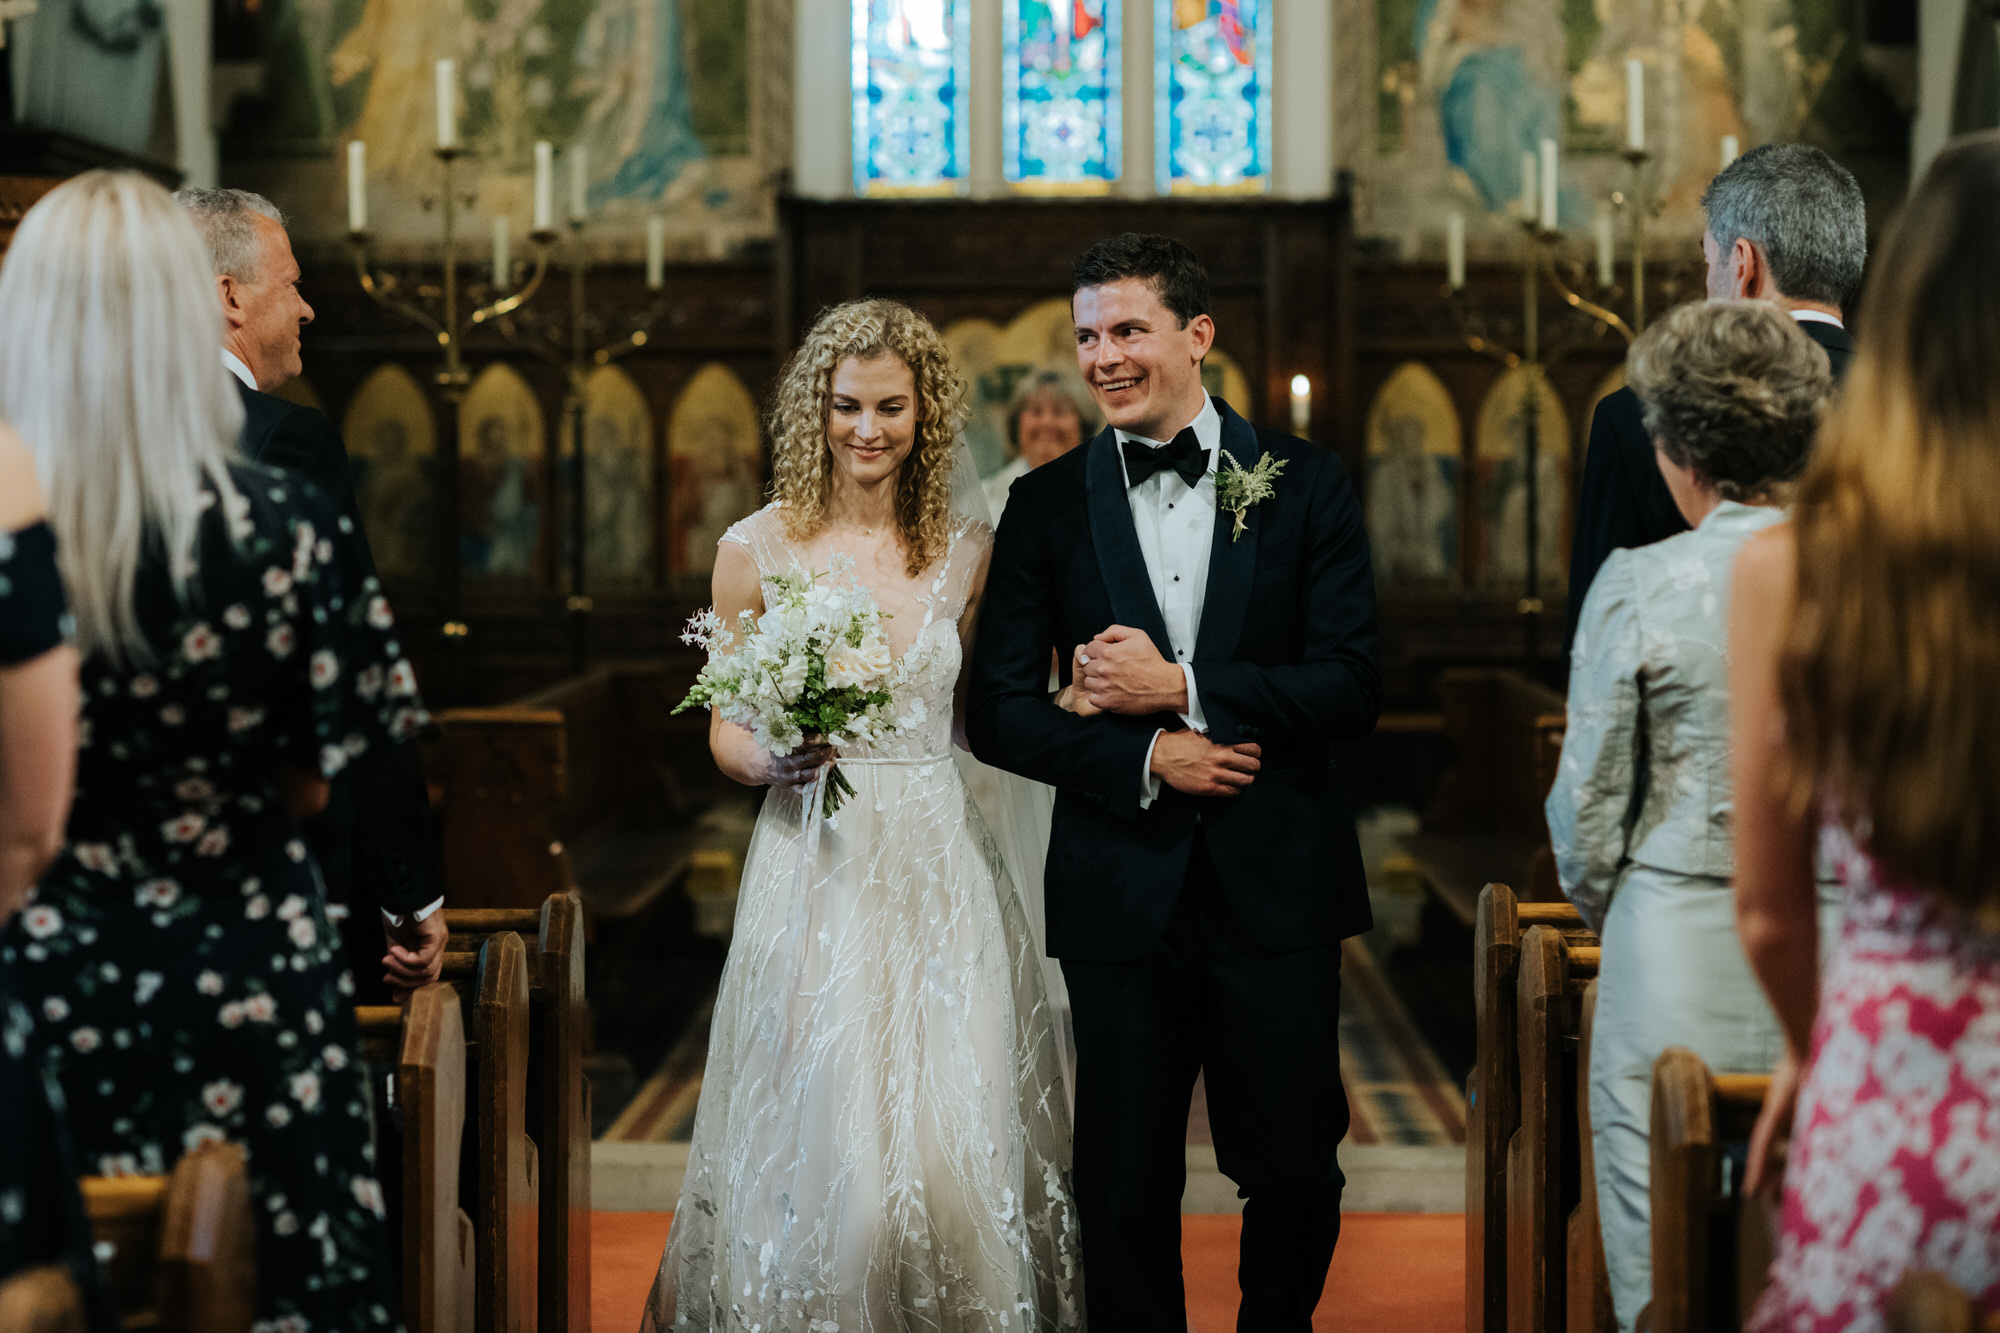 Bride and Groom walk down aisle in church after getting married